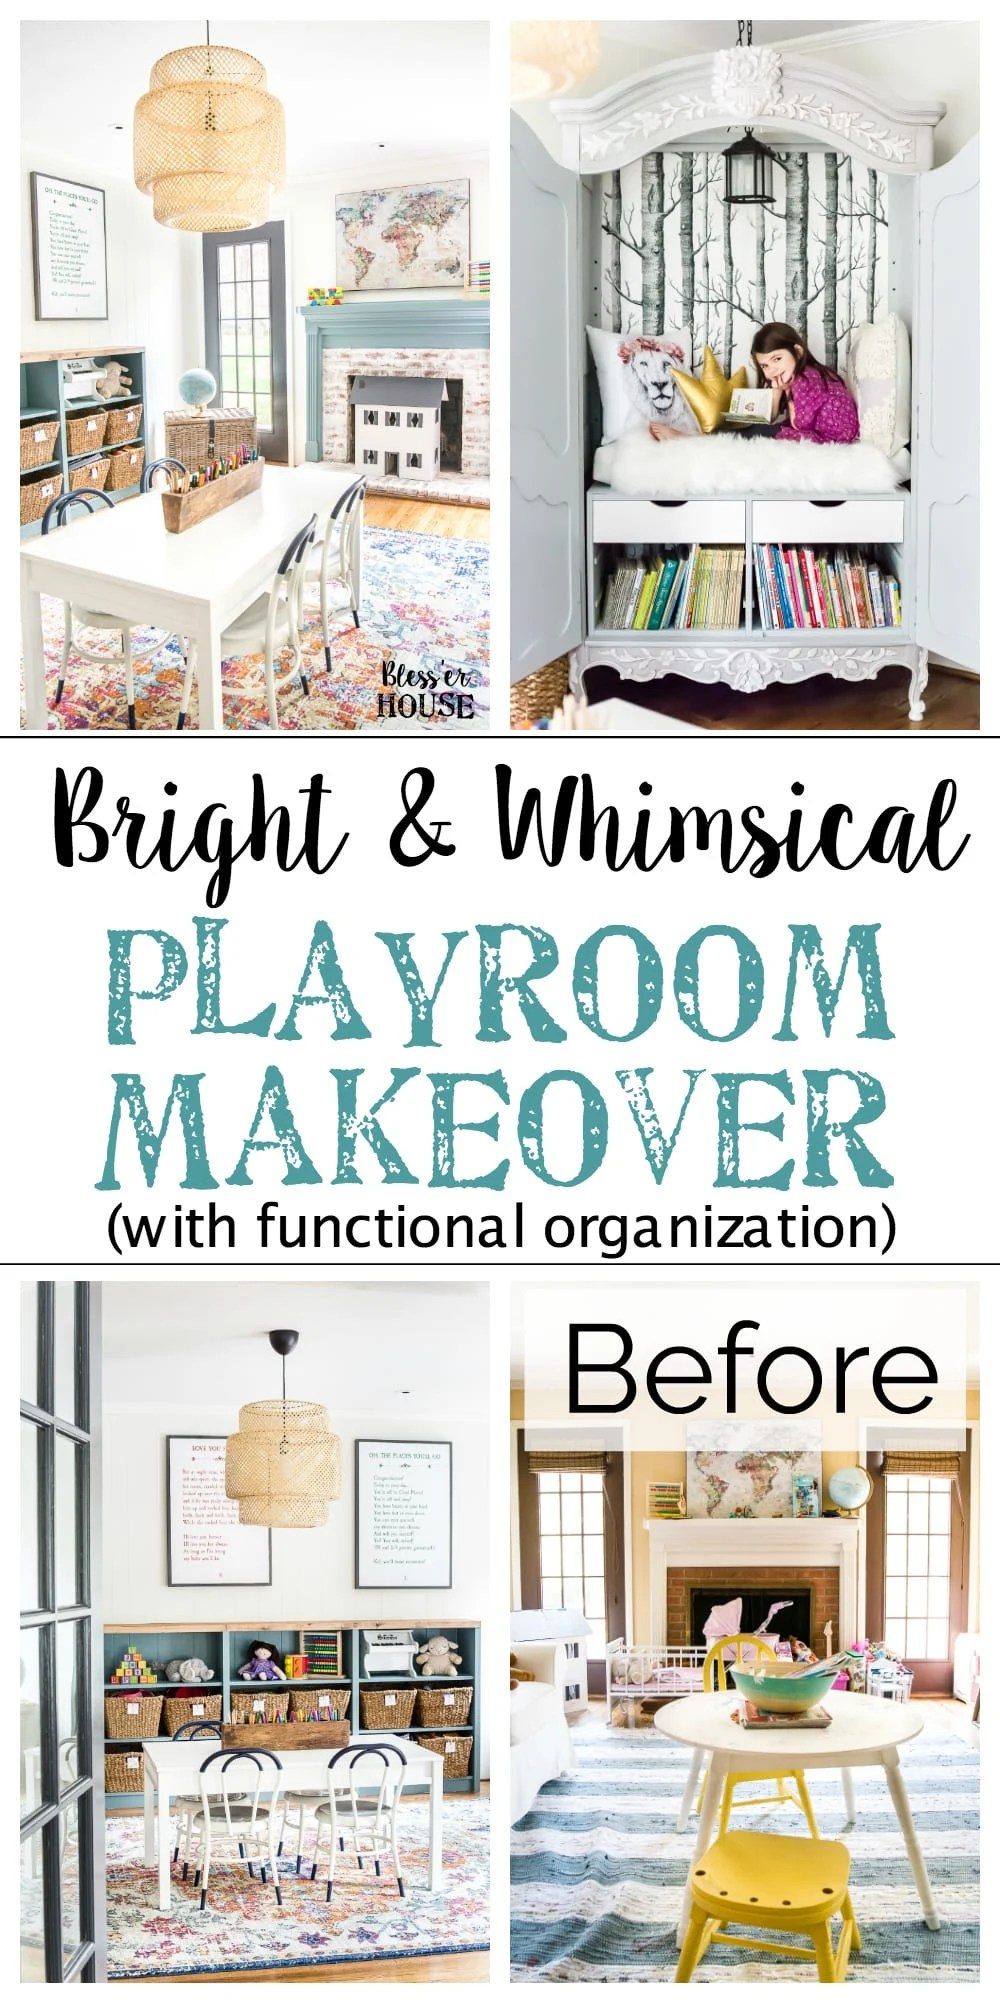 Top 10 Home and DIY Blog Posts of 2018 | Bright and Whimsical Playroom Makeover